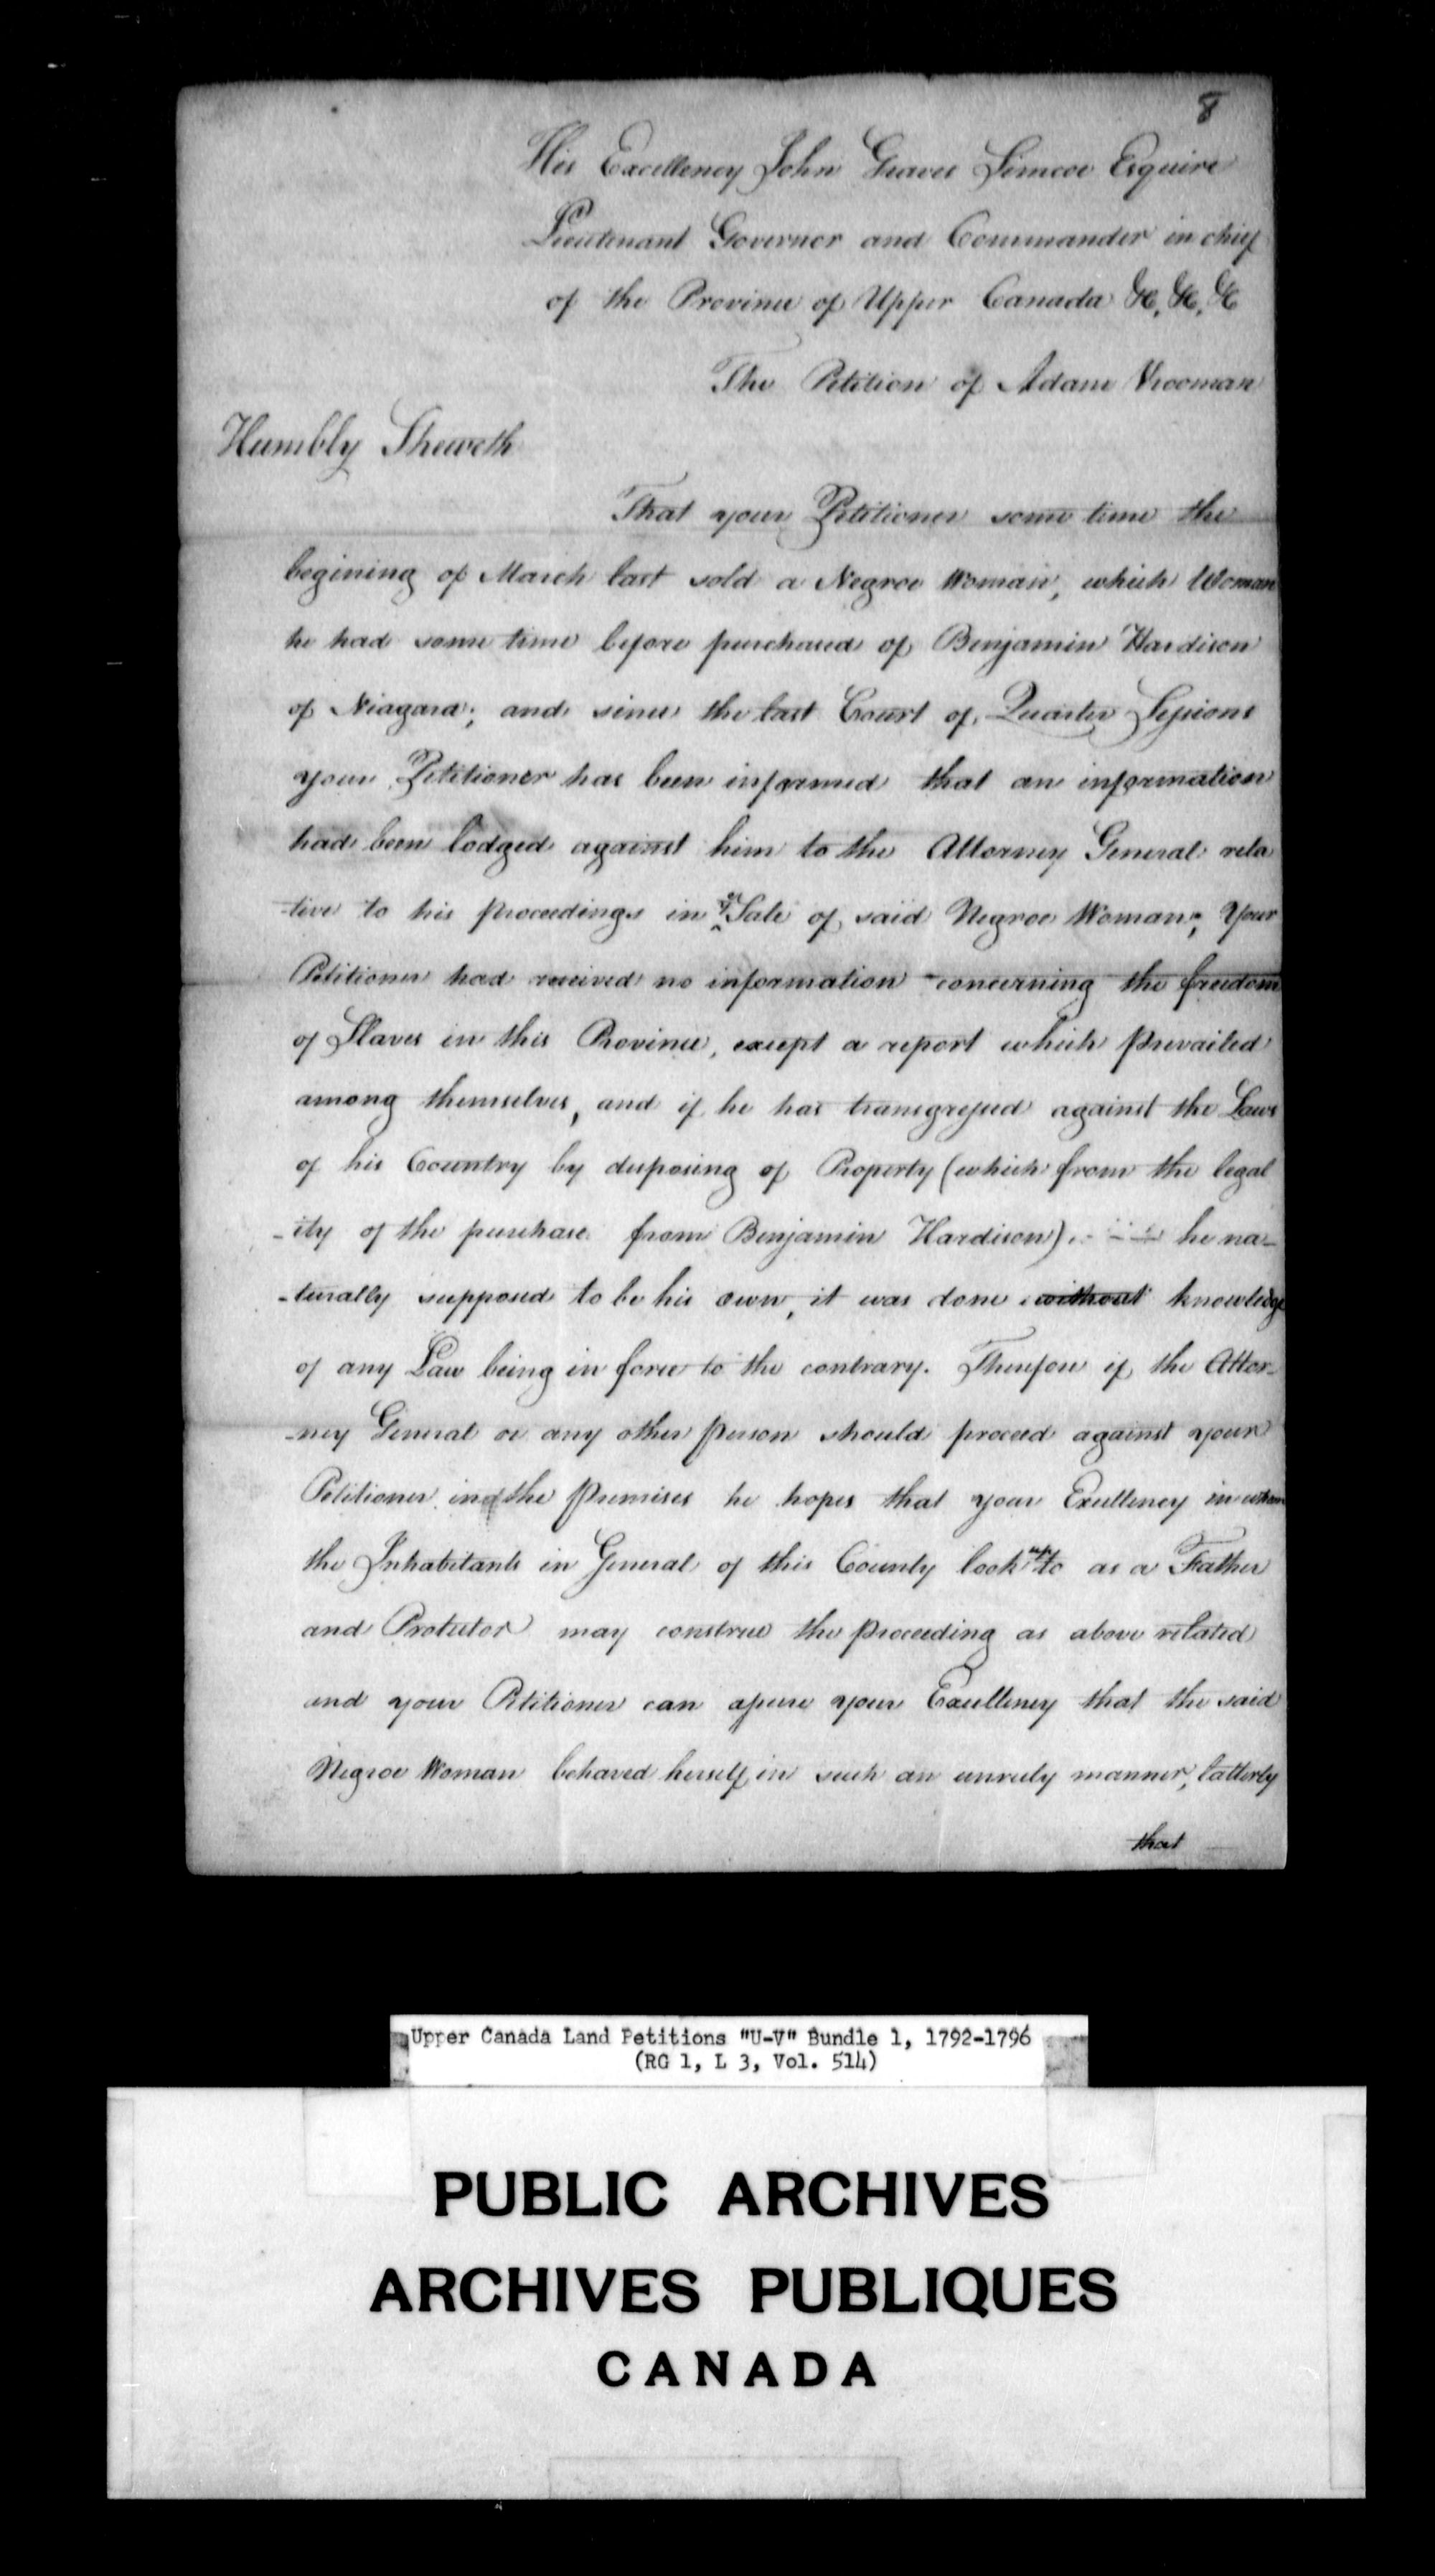 Title: Upper Canada Land Petitions (1763-1865) - Mikan Number: 205131 - Microform: c-2842